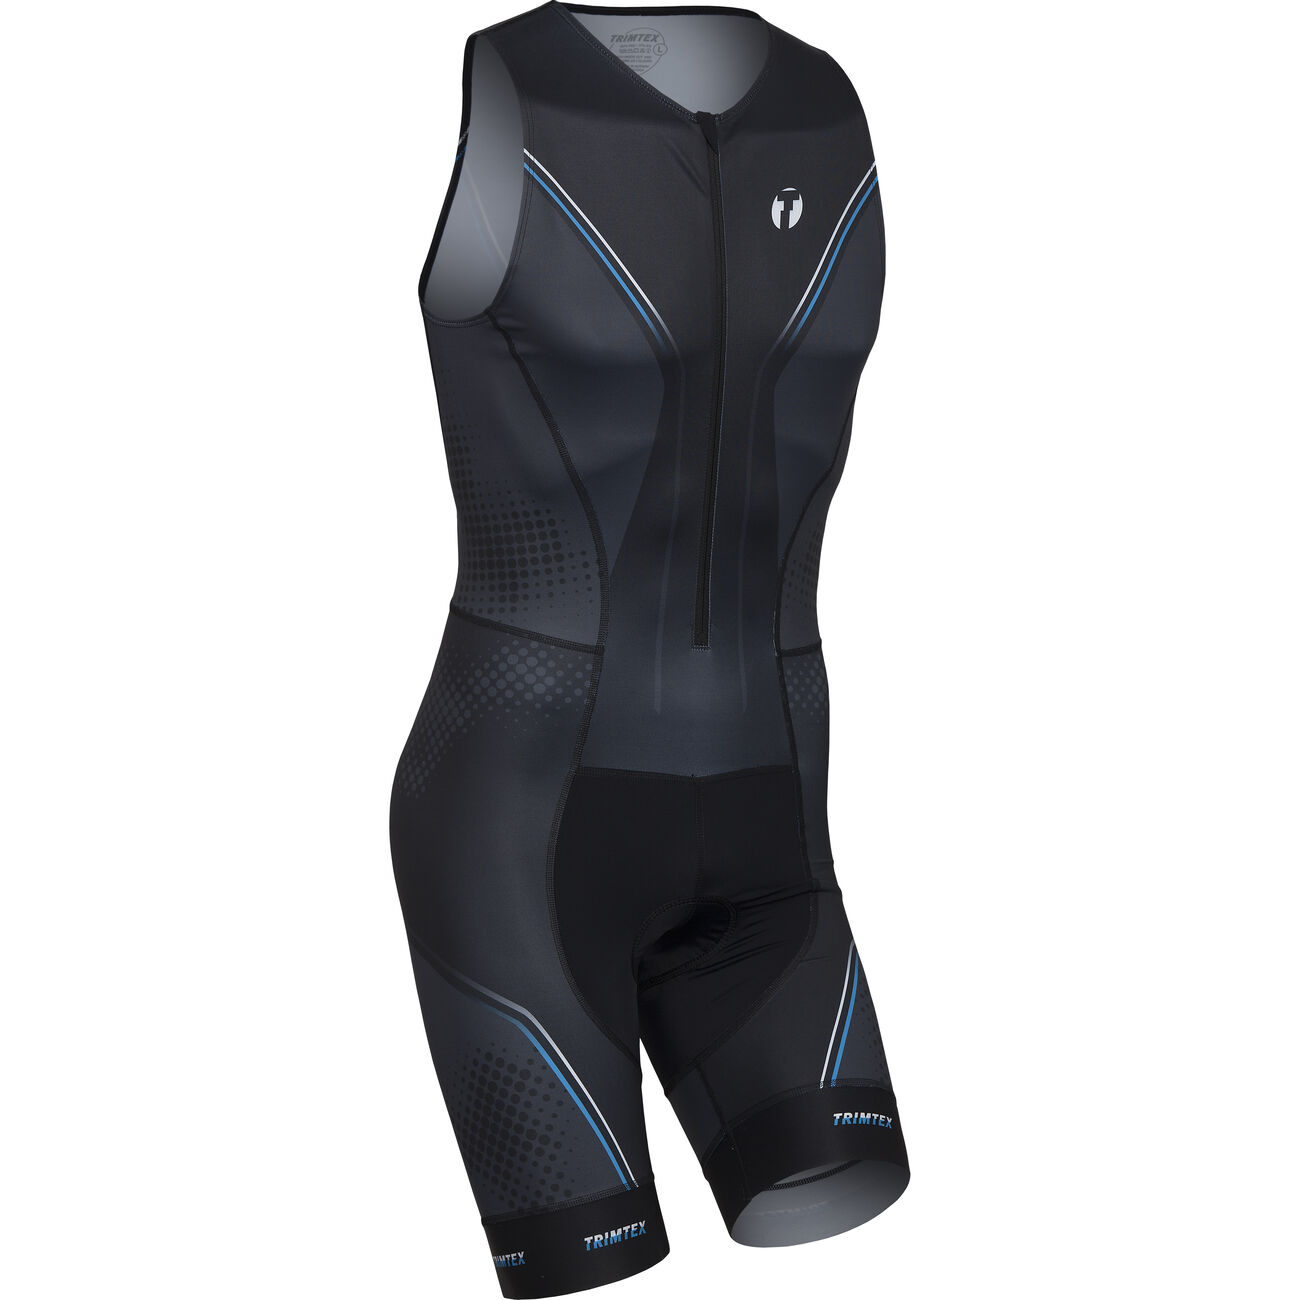 Triathlon skinsuit men's